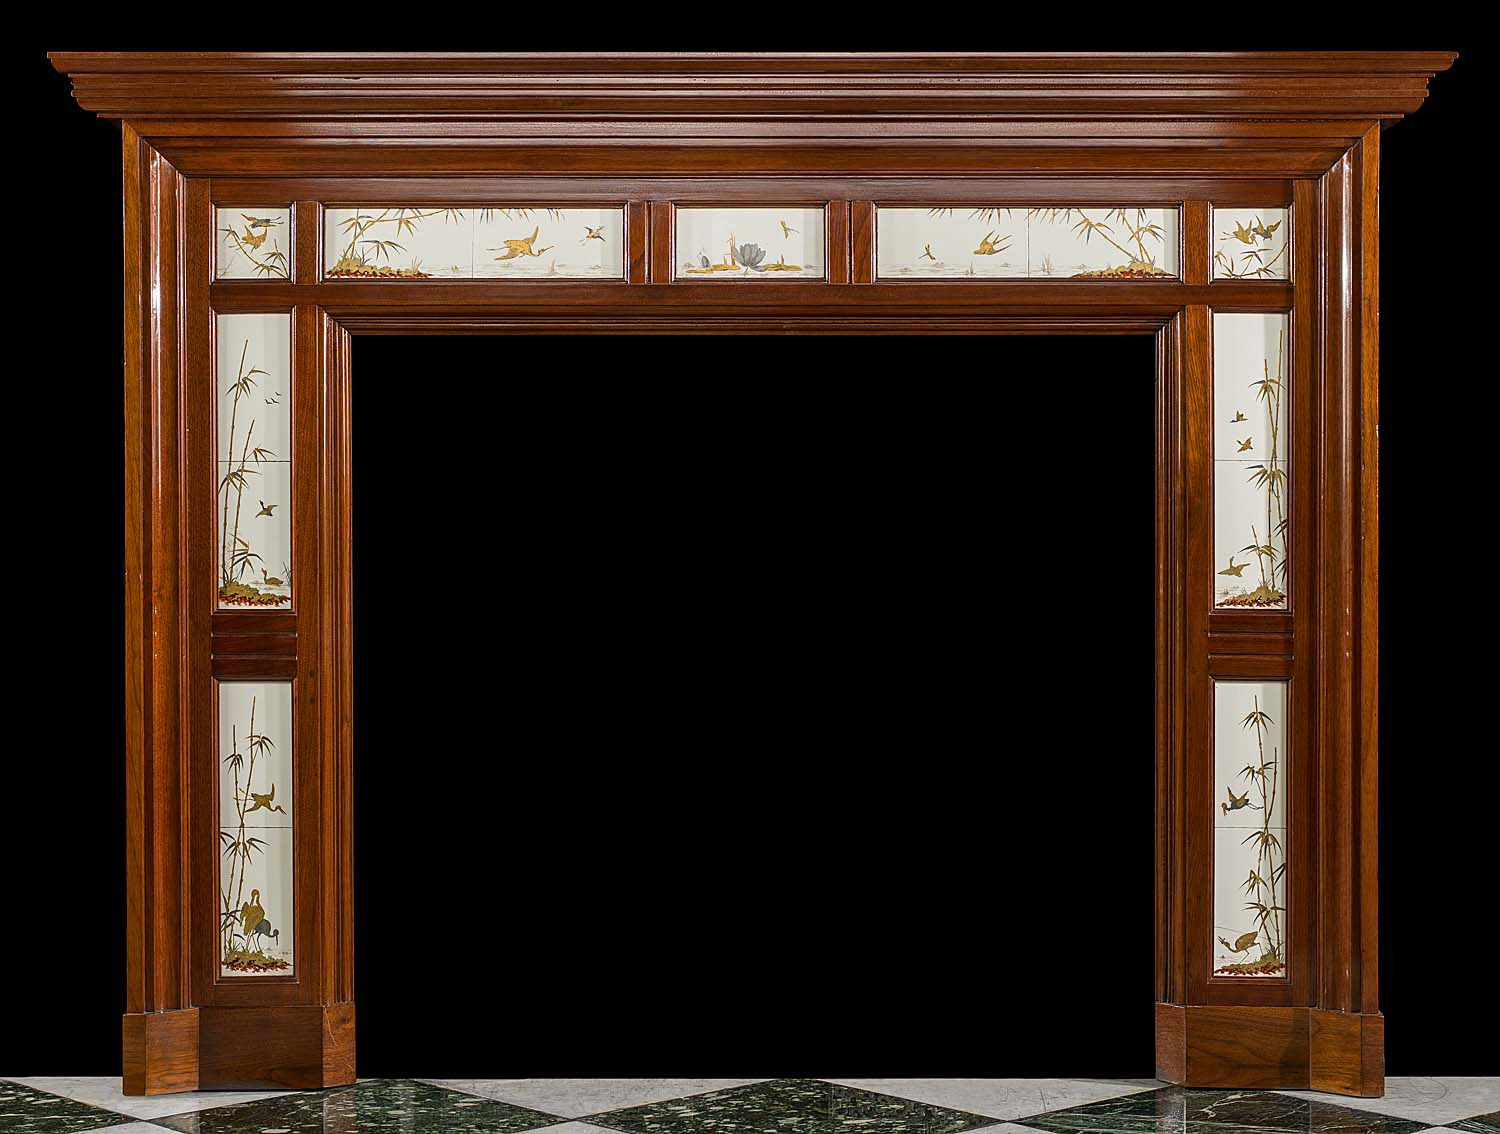 A Victorian antique chimneypiece in walnut set with rare Minton Tiles